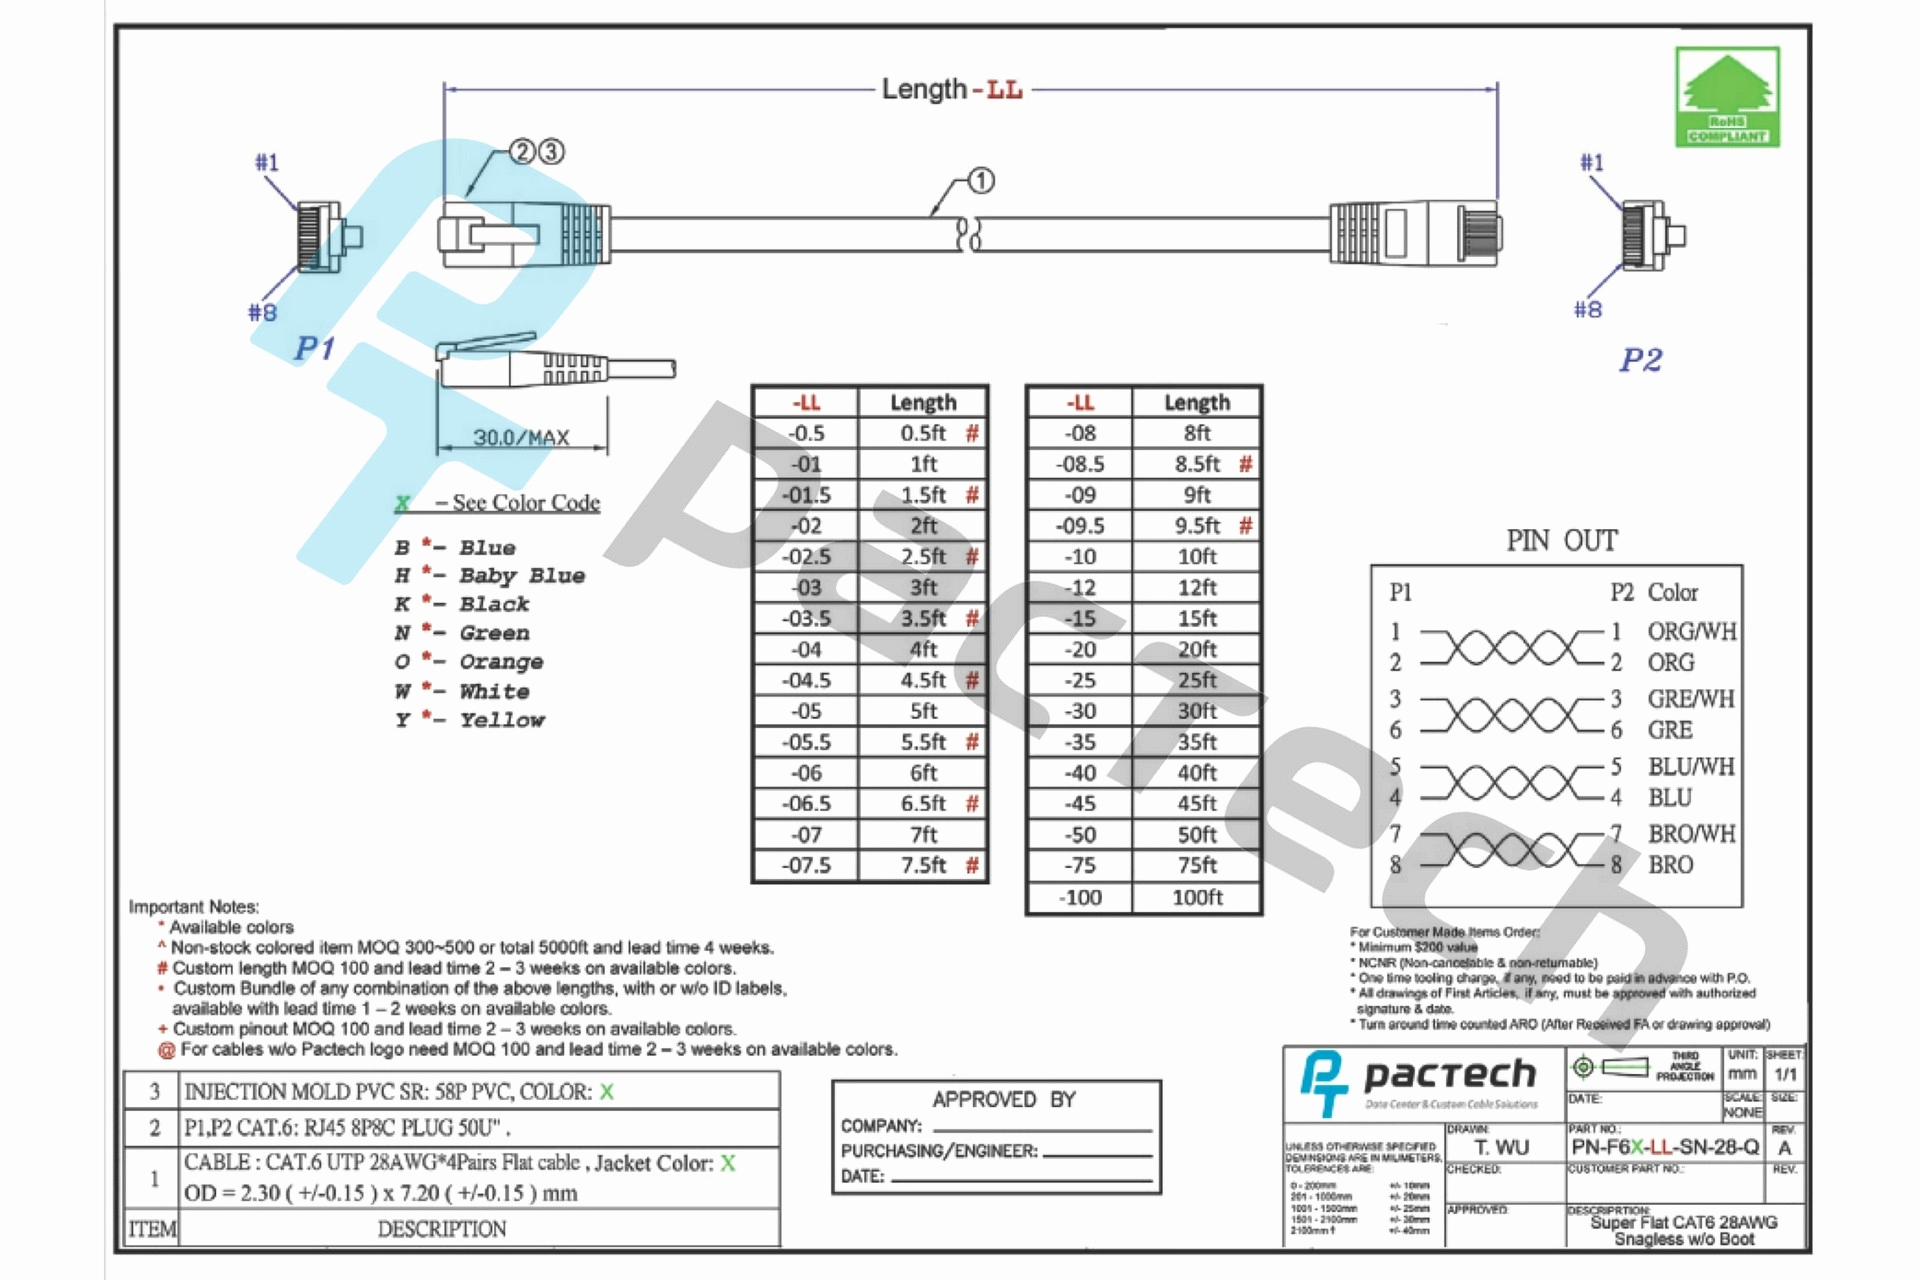 Patch Cable Cat 6 Wiring Diagram